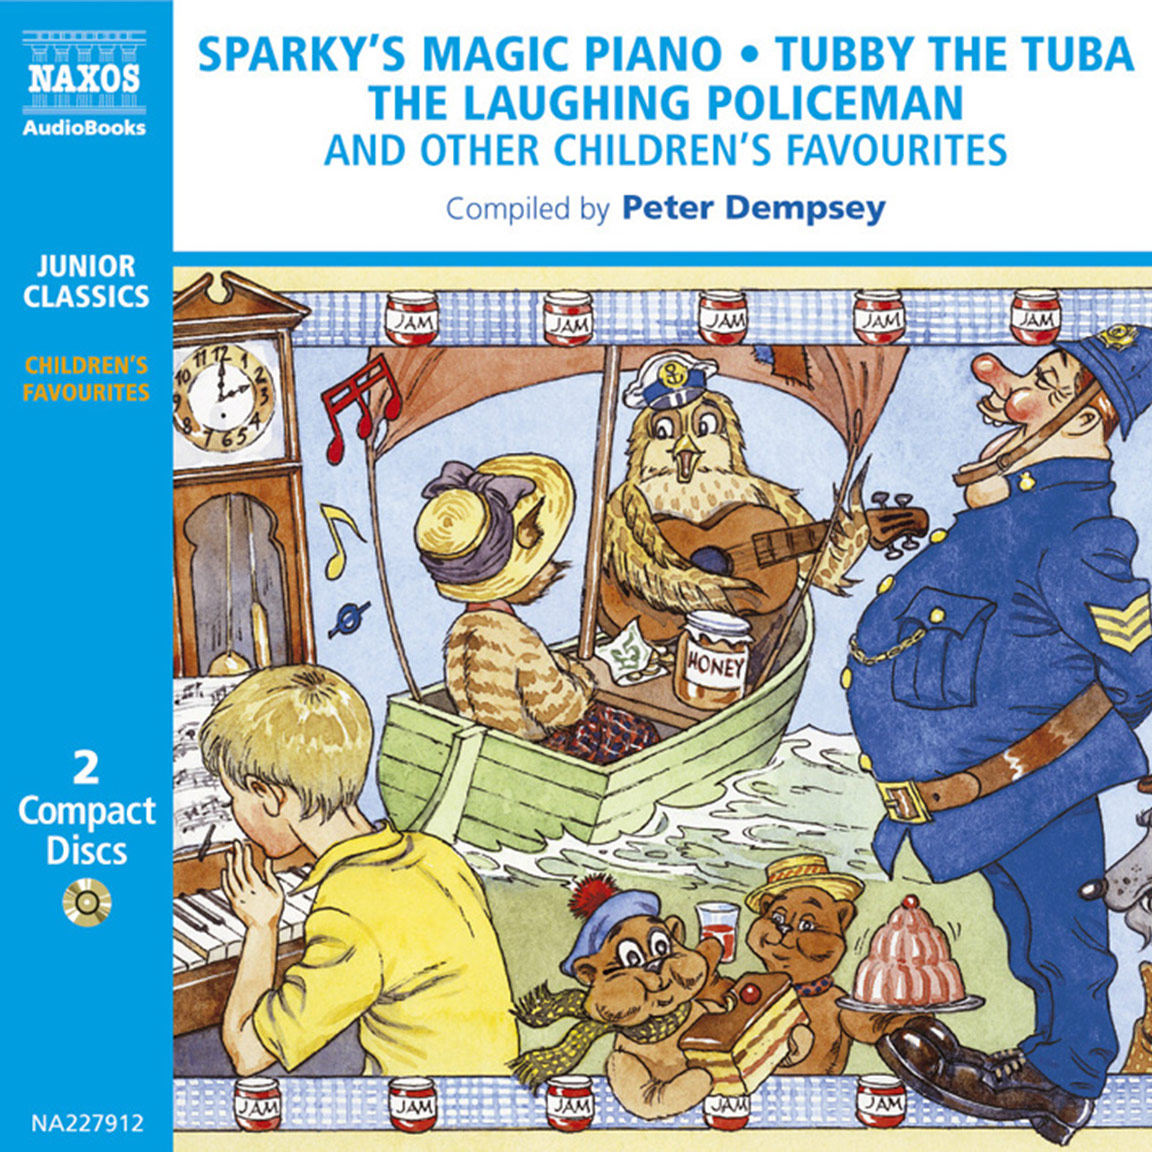 Sparky's Magic Piano (compilation)